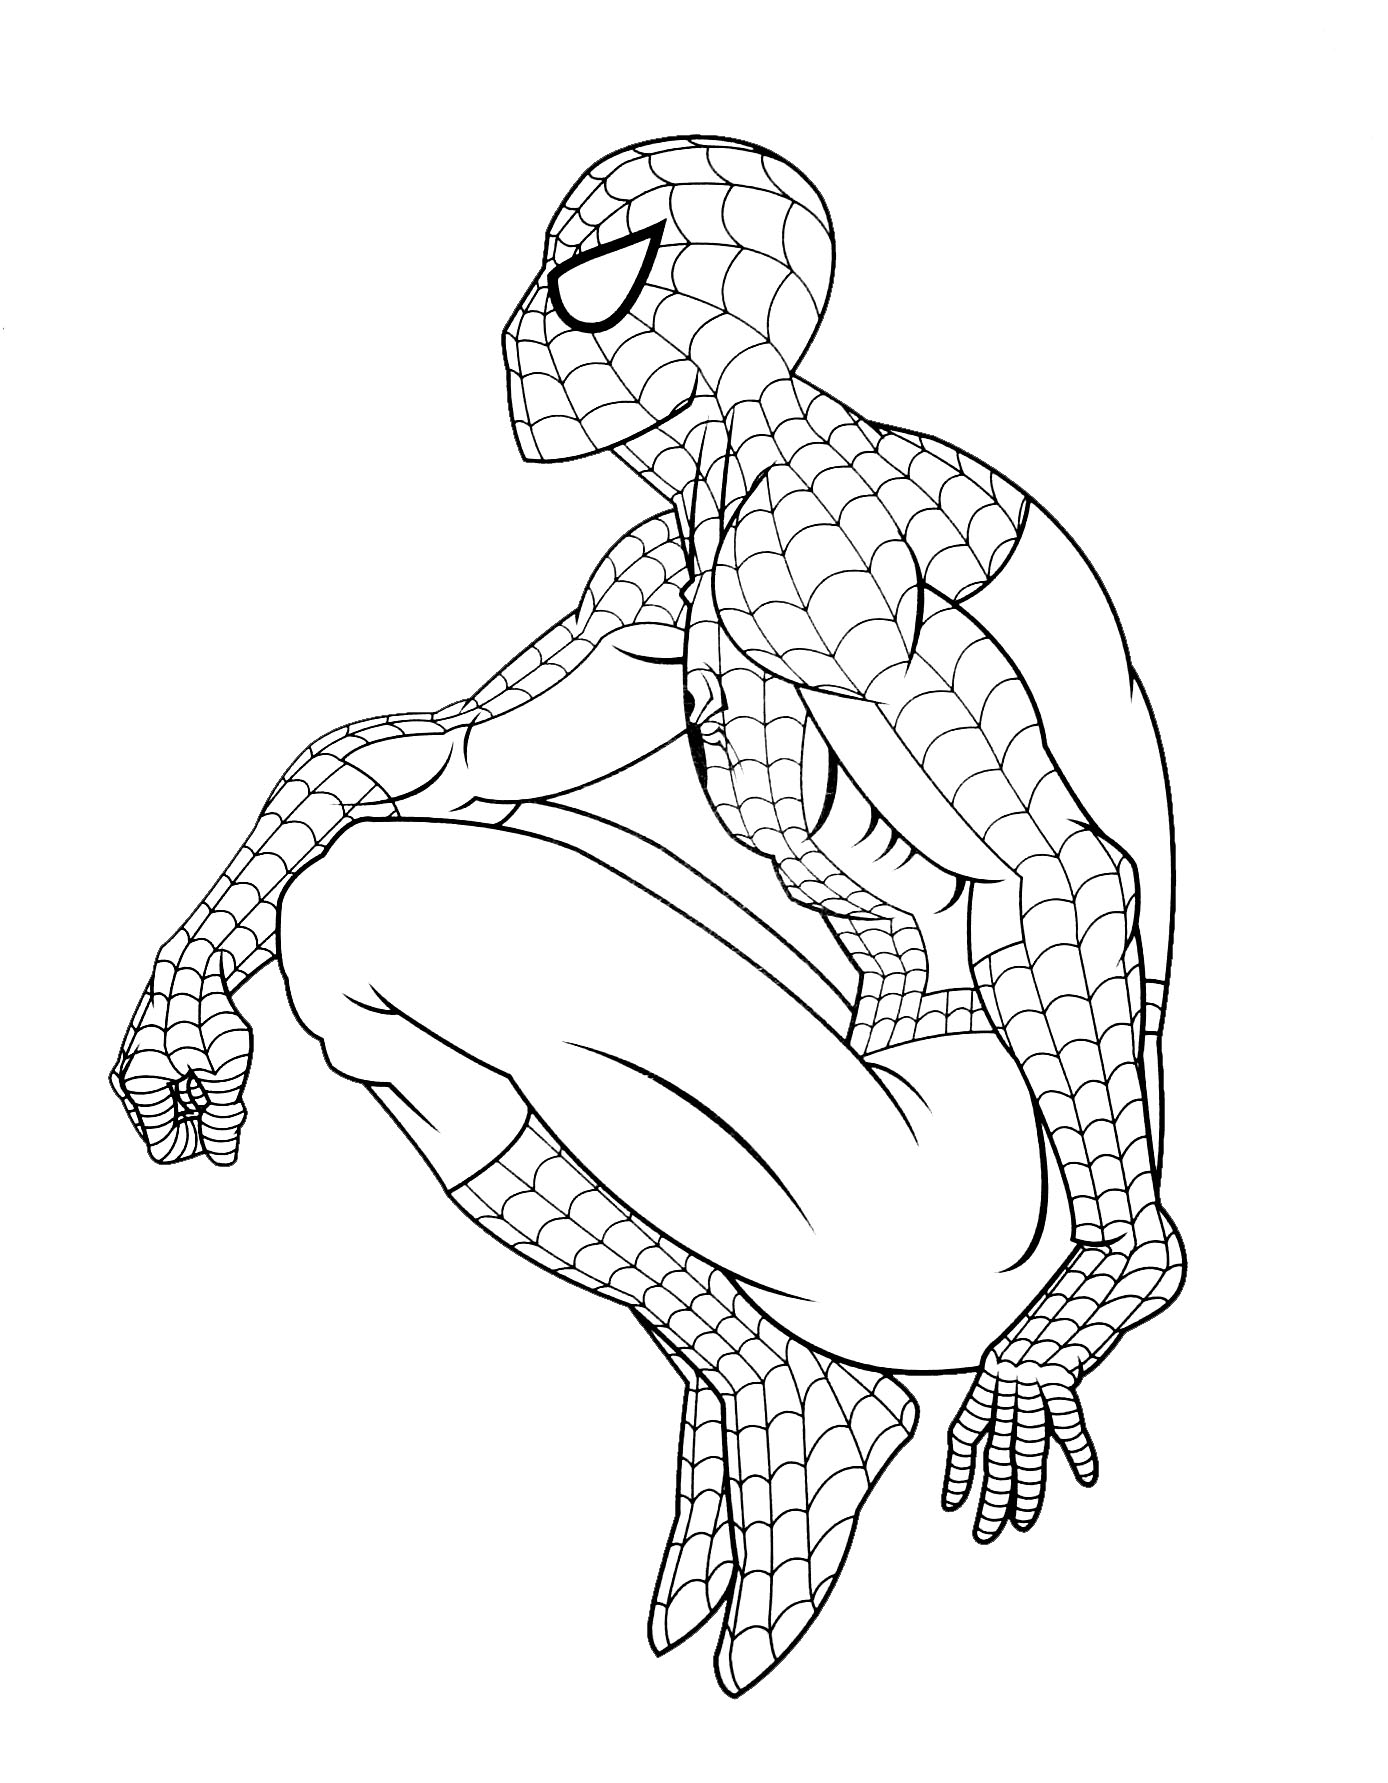 Spiderman gratuit 4 coloriage spiderman coloriages - Spider man en dessin ...